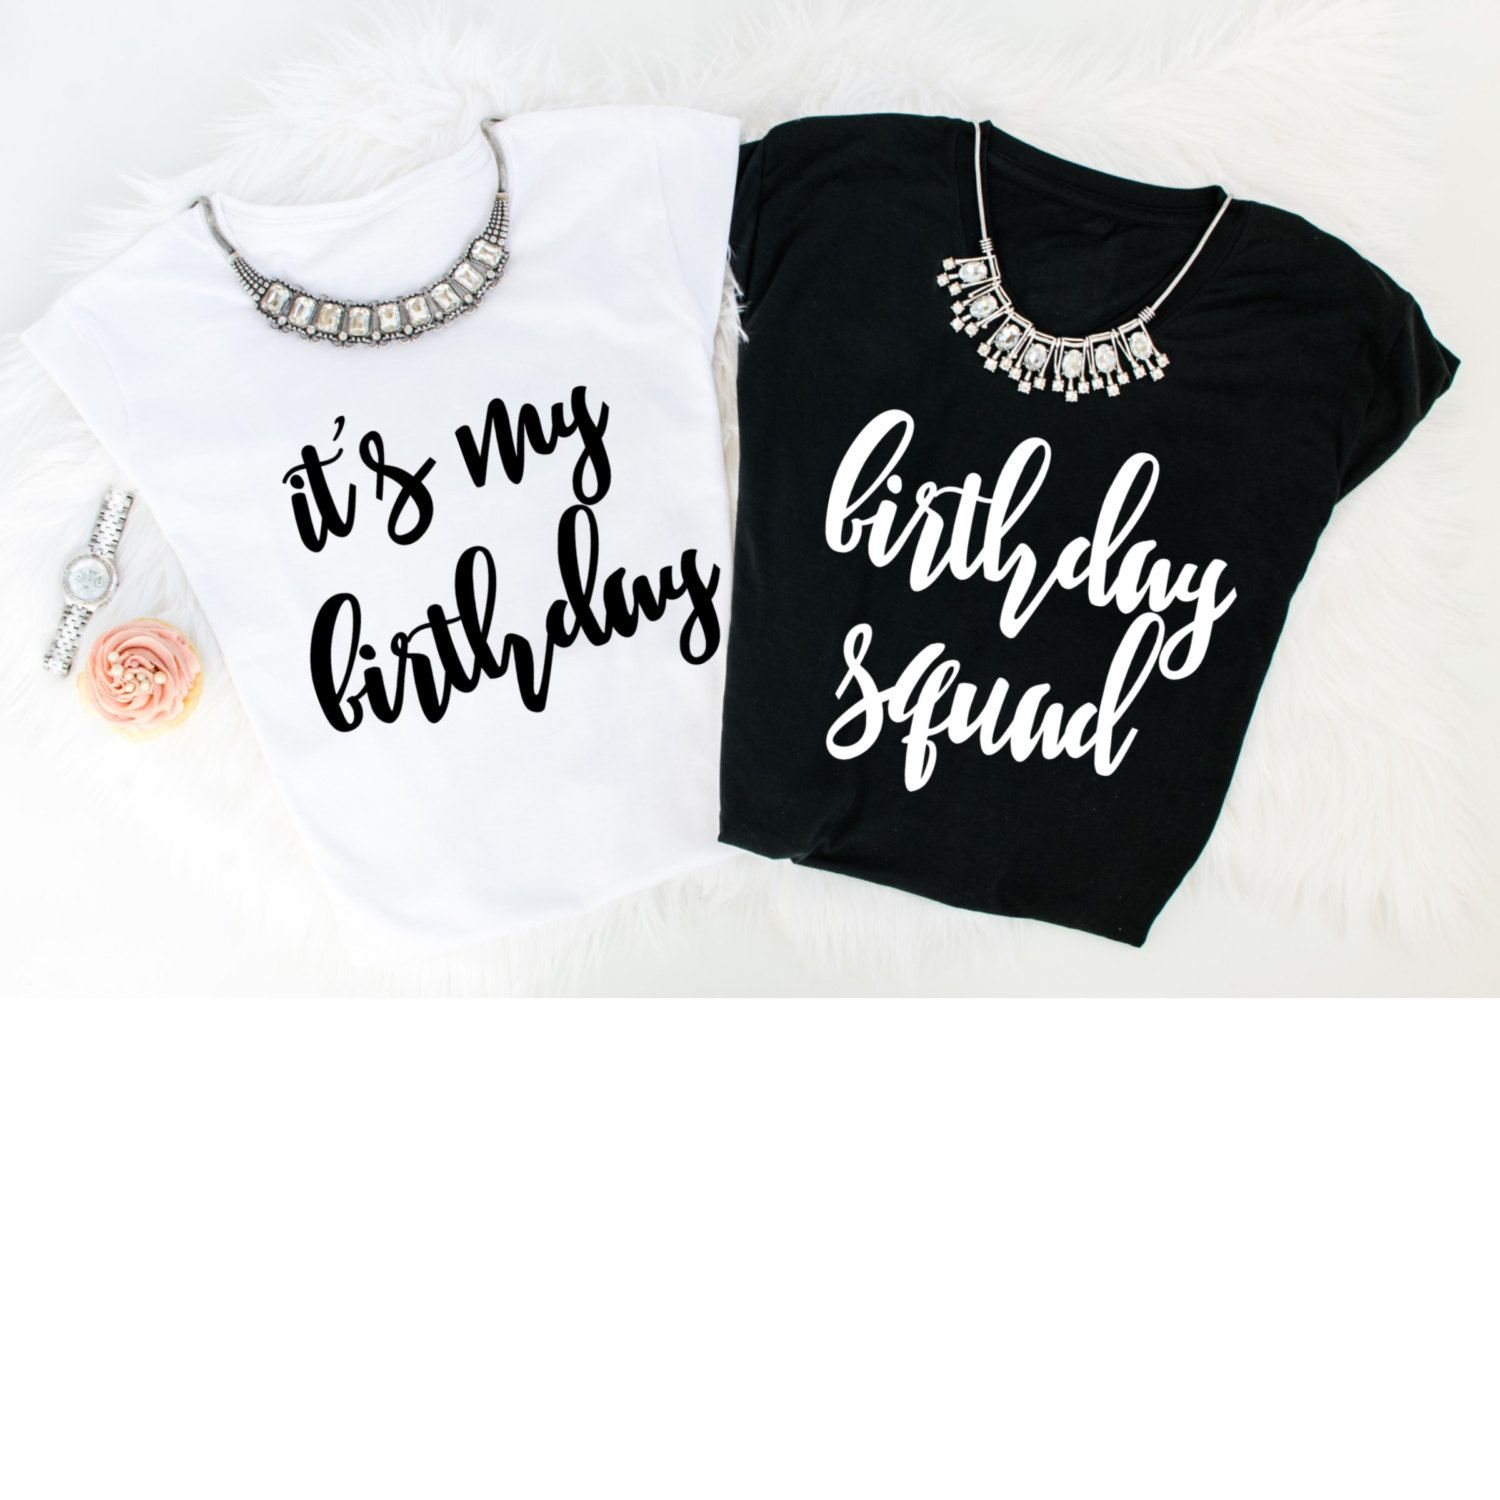 030a4d2f1 It's my birthday T-Shirt, Birthday Squad, S-XXL, Women's Apparel, Birthday  Shirt, 30th birthday, Dirty Thirty shirt, birthday tank by ShopatBash on  Etsy